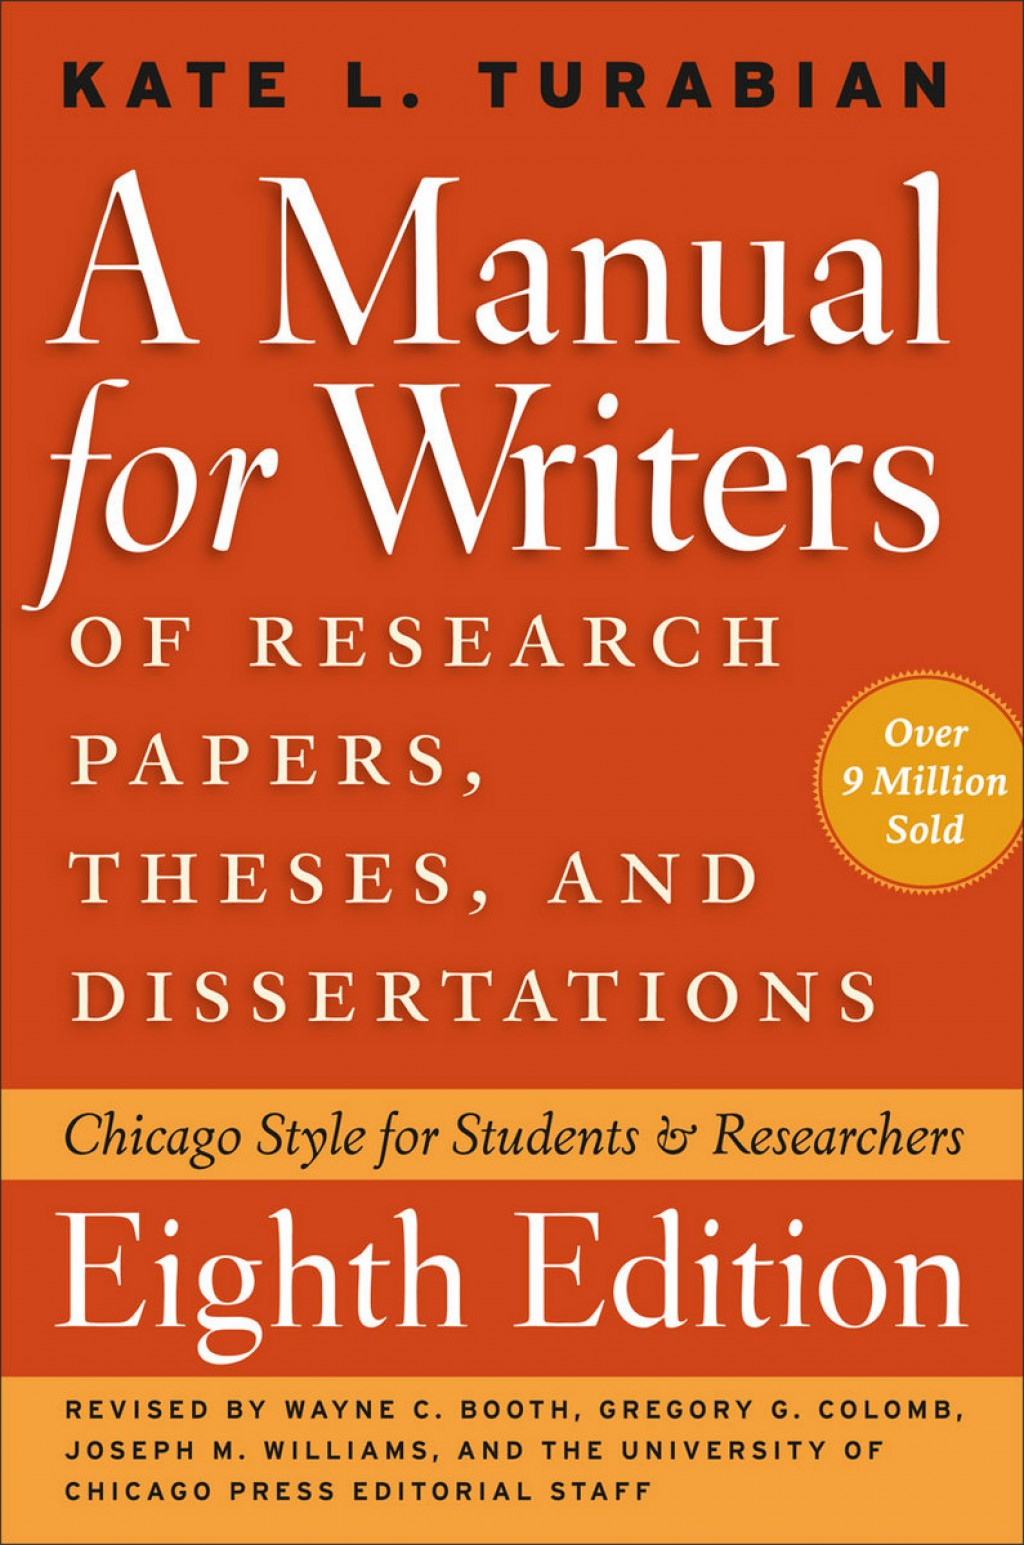 002 Frontcover Manual For Writers Of Researchs Theses And Dissertations Sensational A Research Papers Ed. 8 8th Edition Ninth Pdf Large